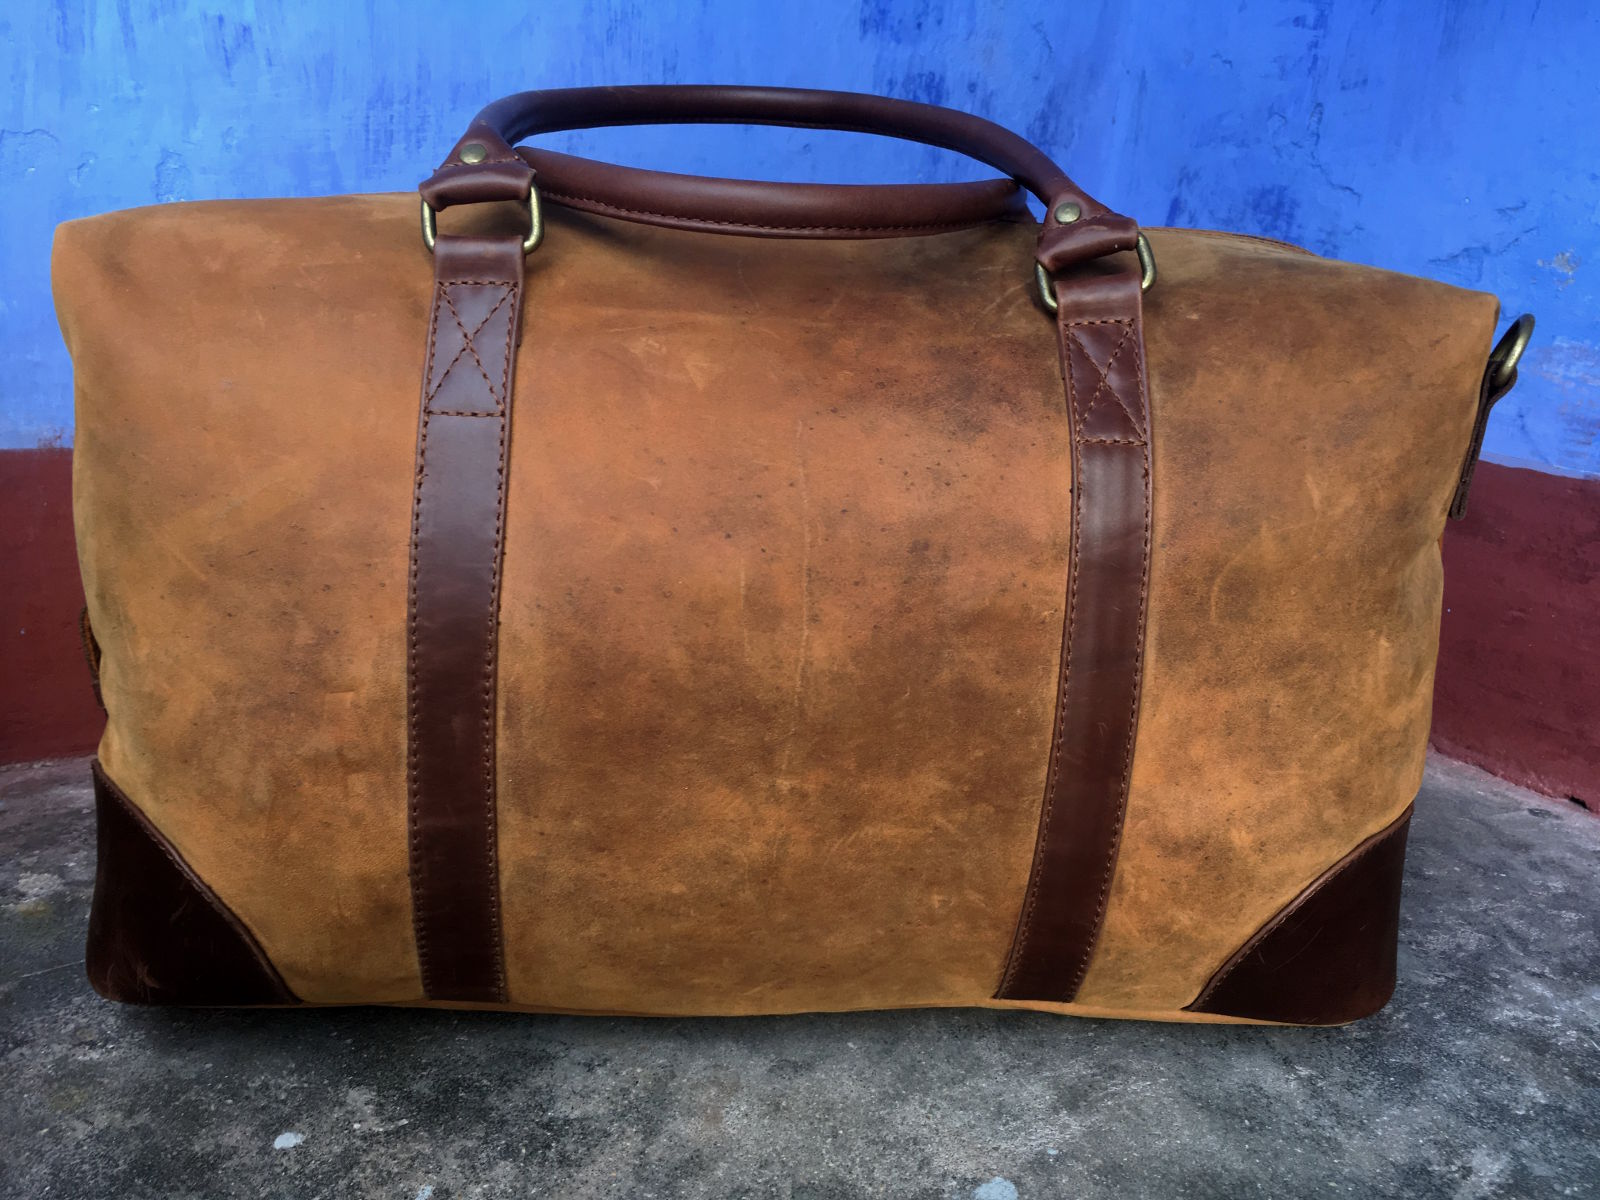 Hoi An Real Leather - Da Bao Real Leather Hoi An: Big Leather Duffel Bag